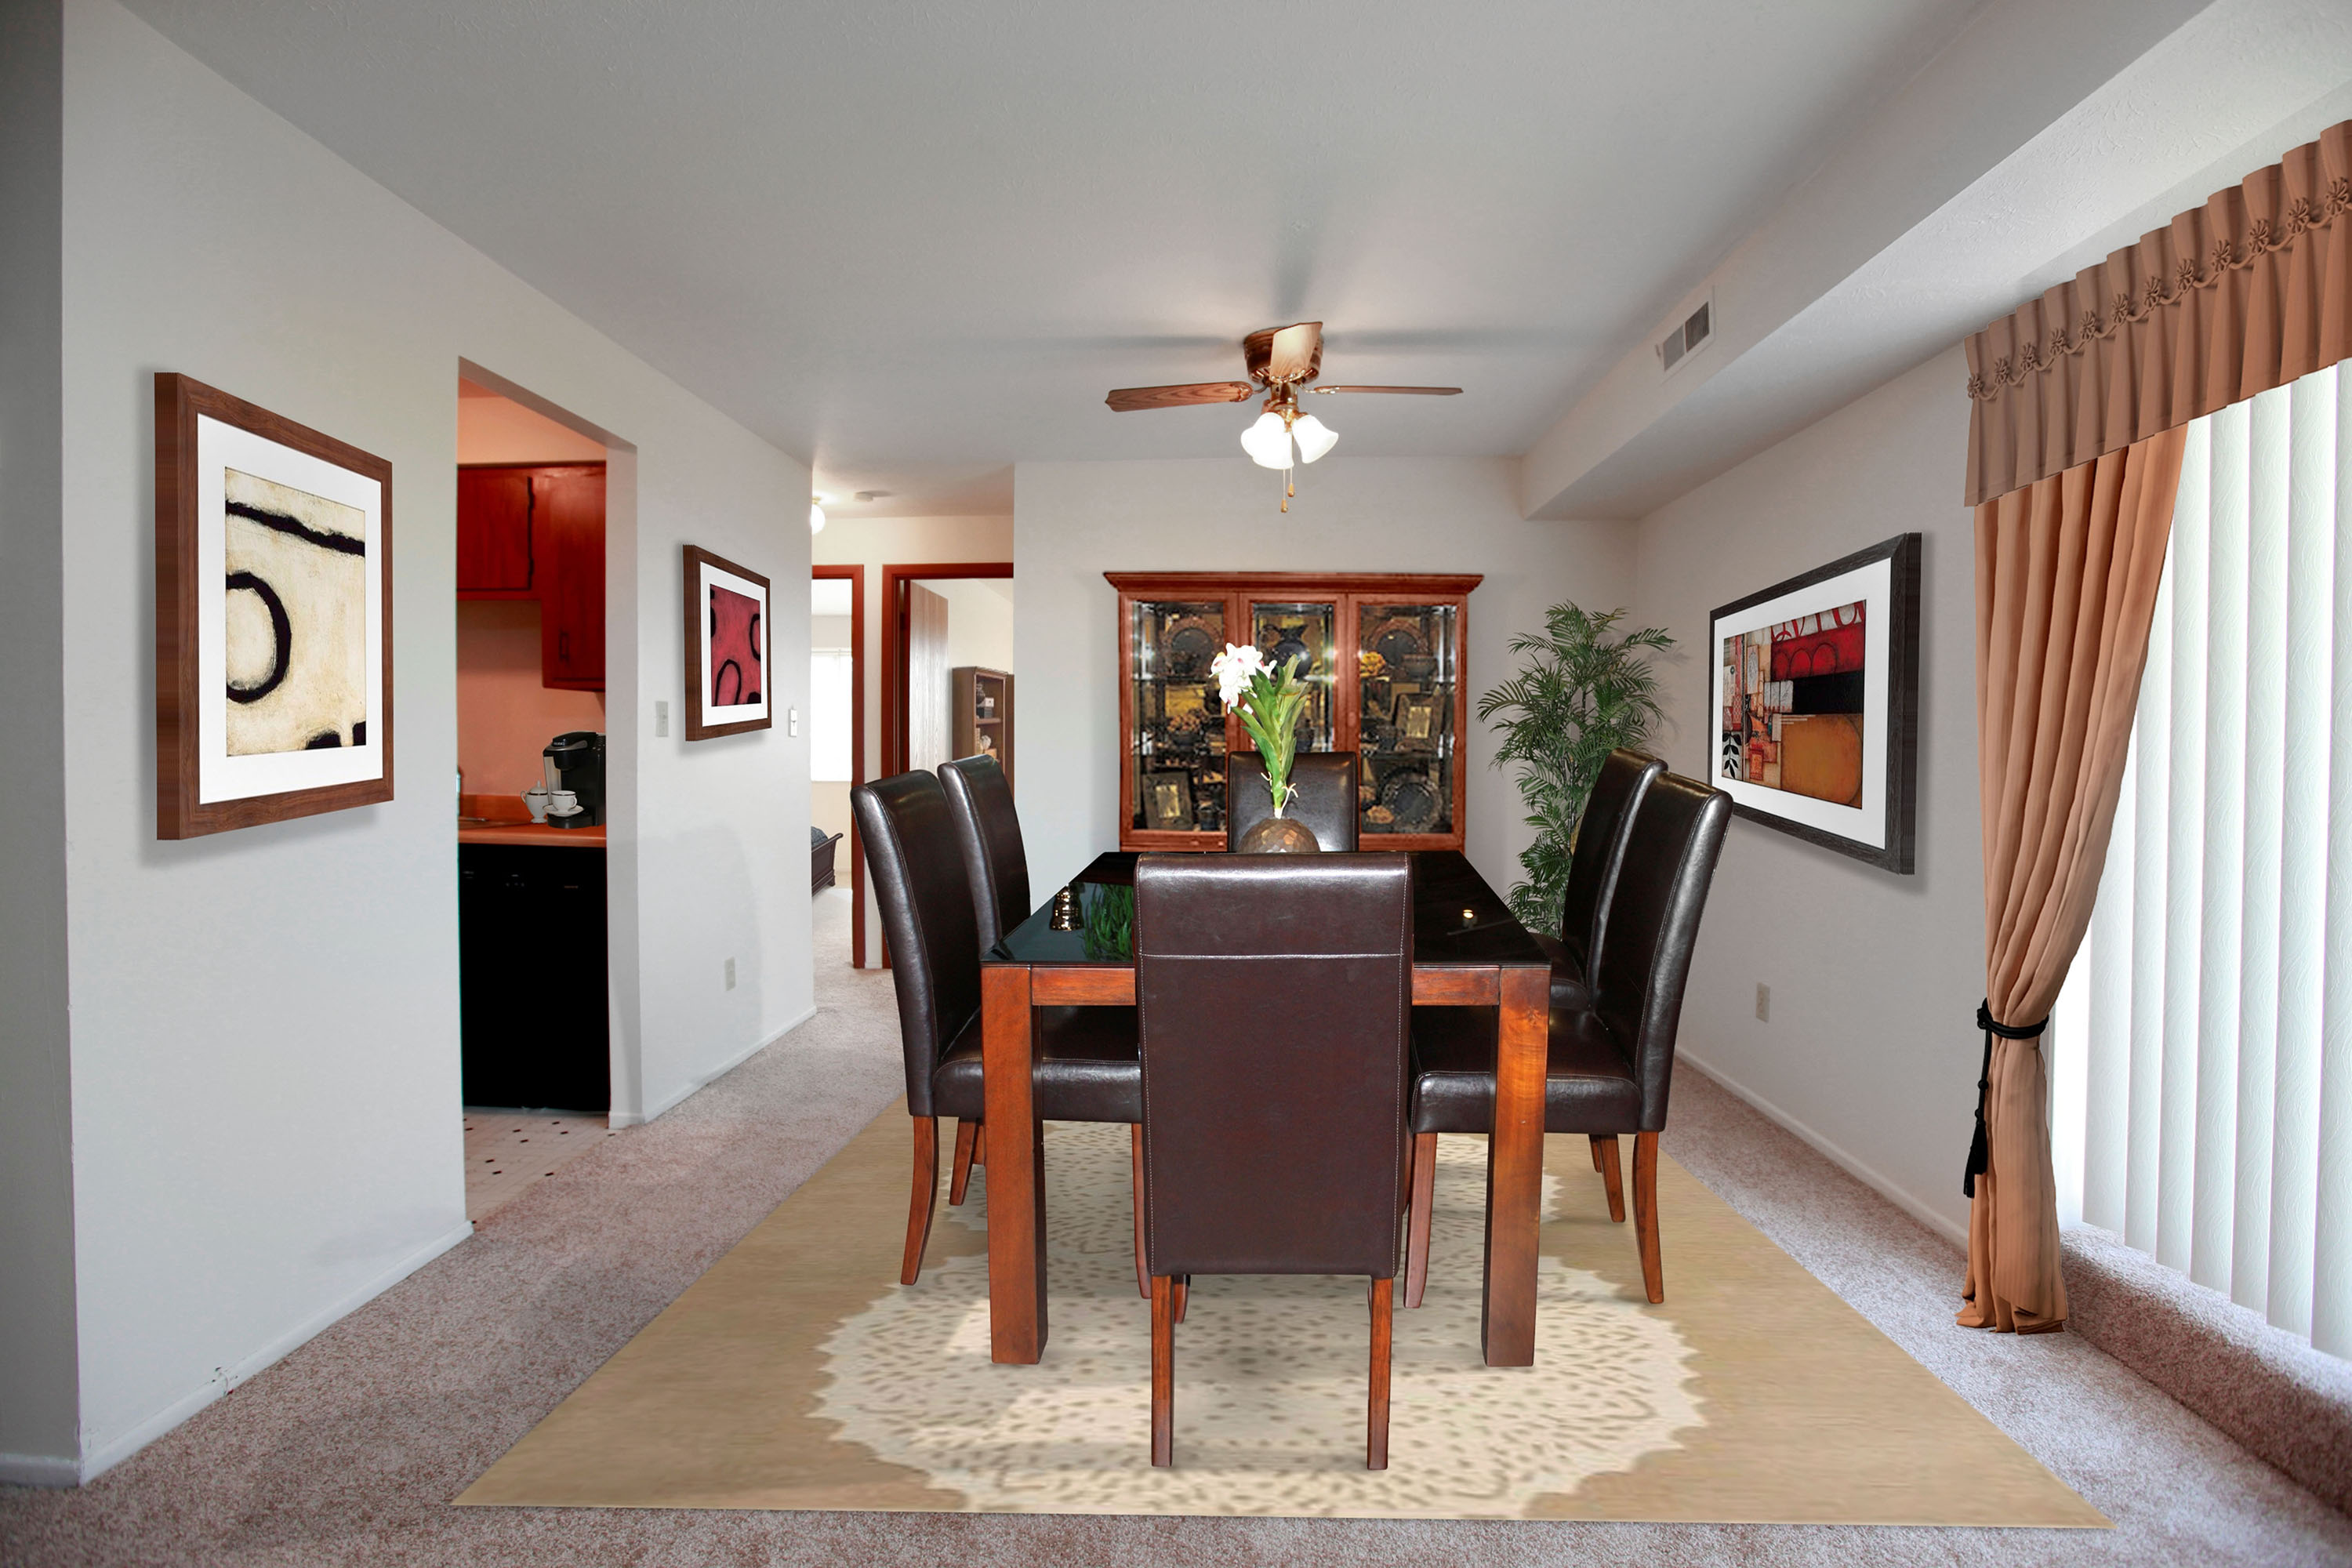 2A Dining Room Furnished at the Greenridge on Euclid Apartments in Euclid, OH